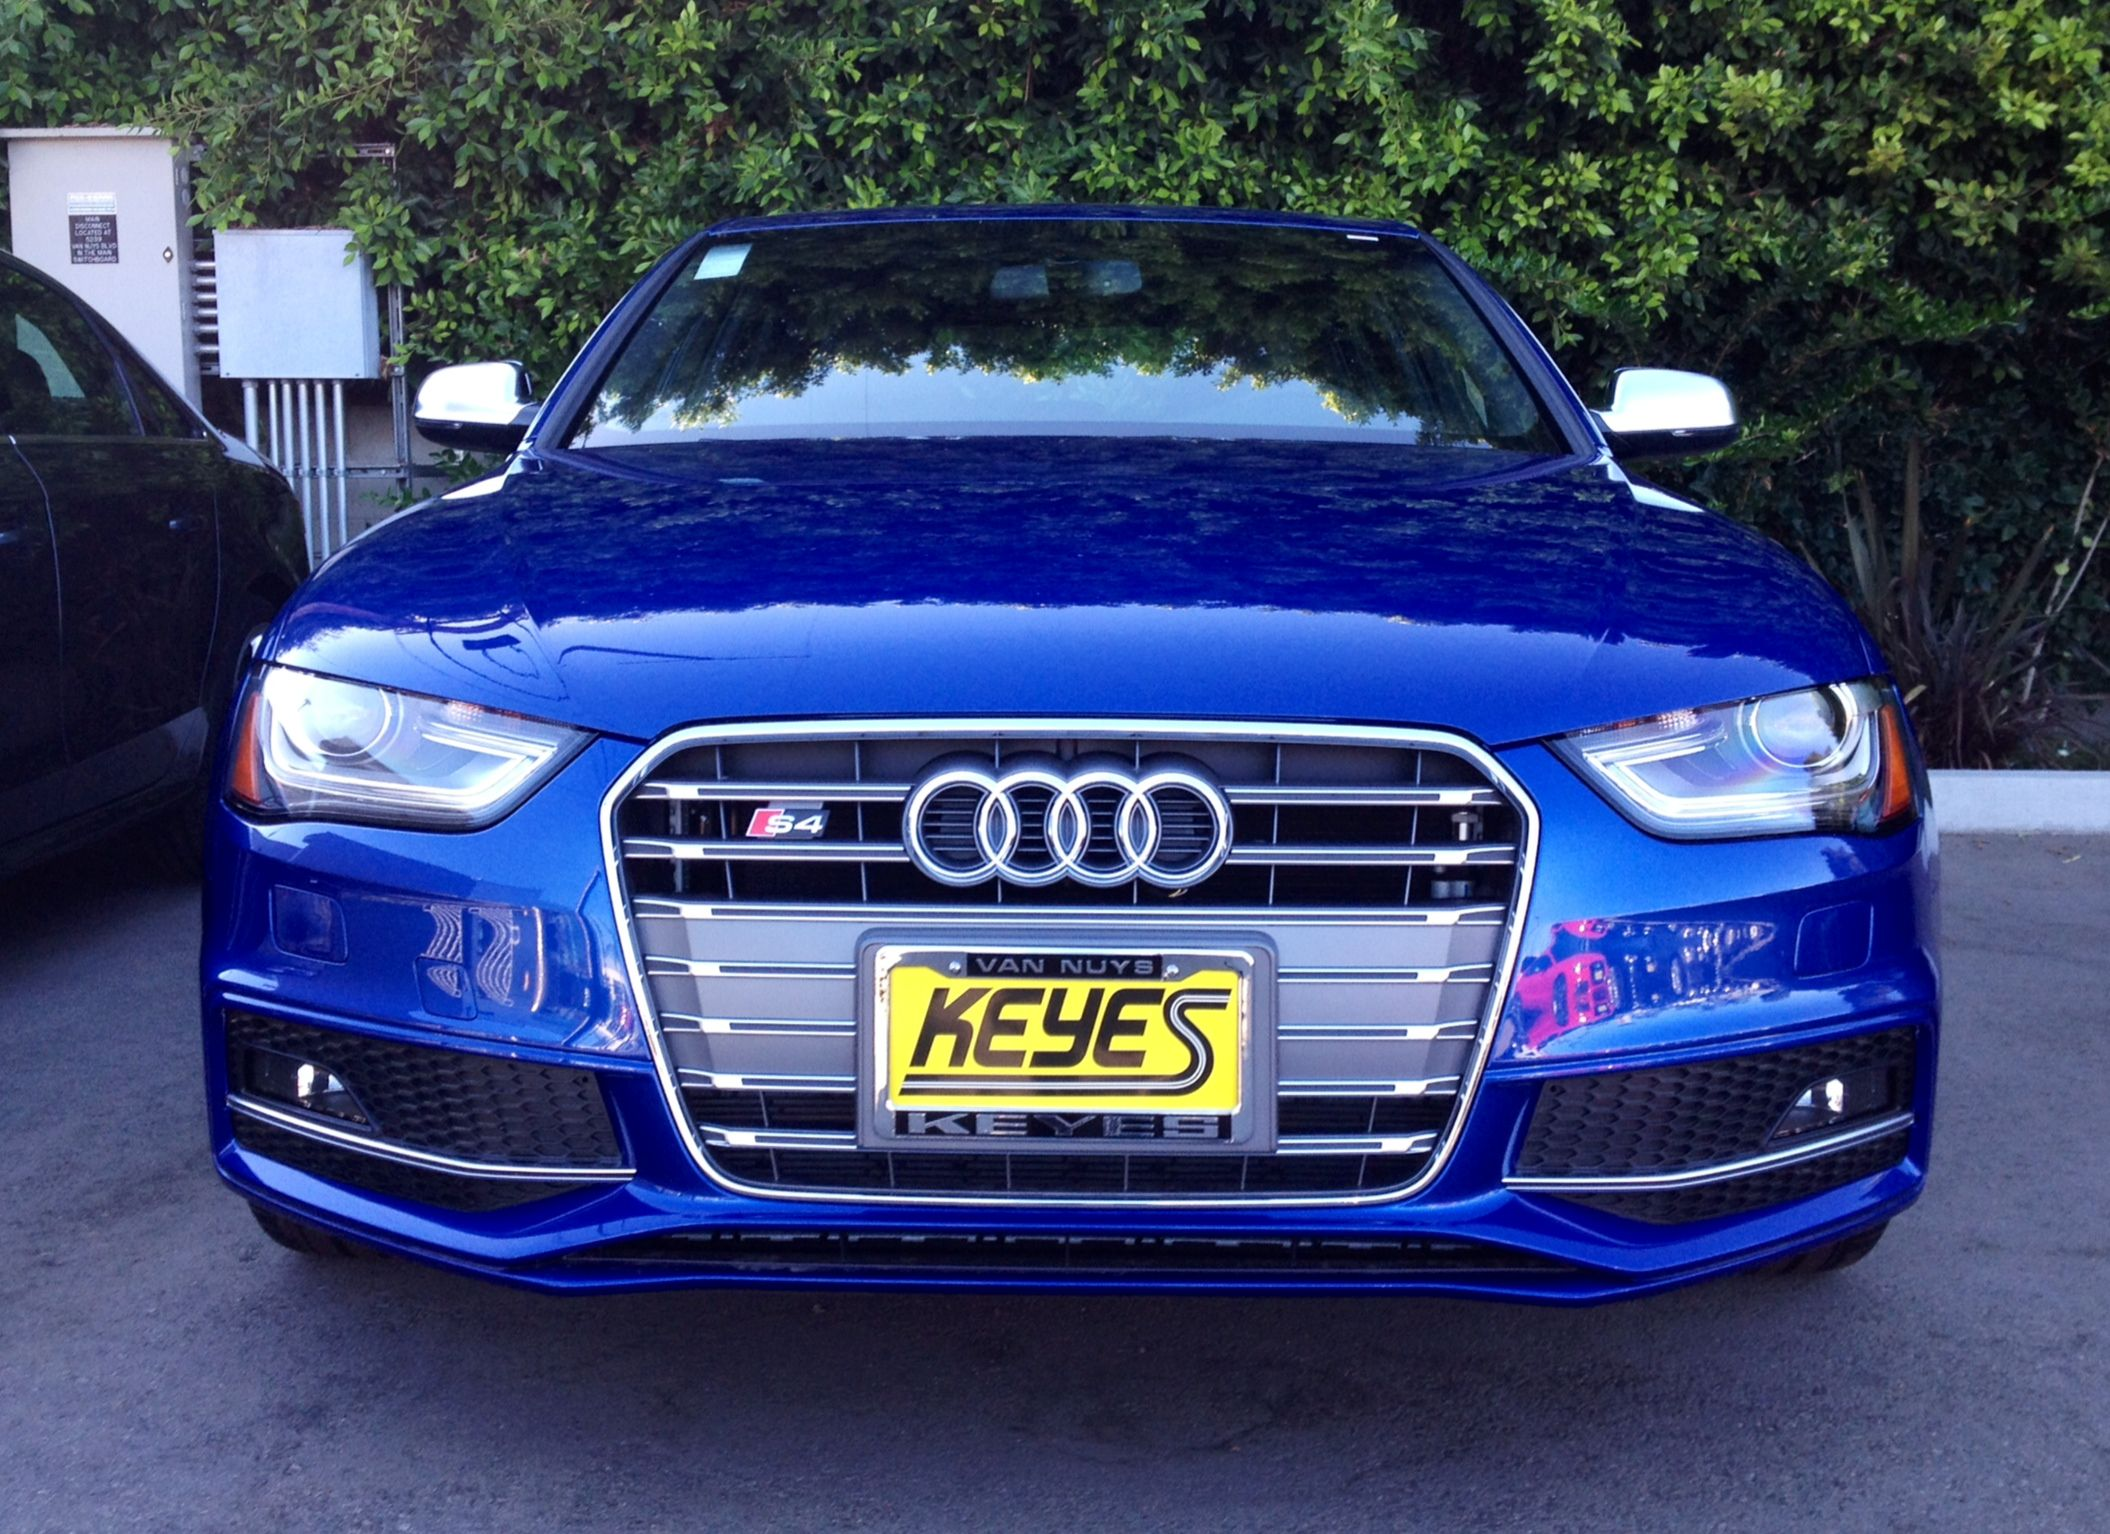 The Only Type Of Blues That I Care For Are The Ones Found On An Audi S4 In Sepang Blue Pearl Effect Www Keyesaudi Com Audi Audi S4 Sepang